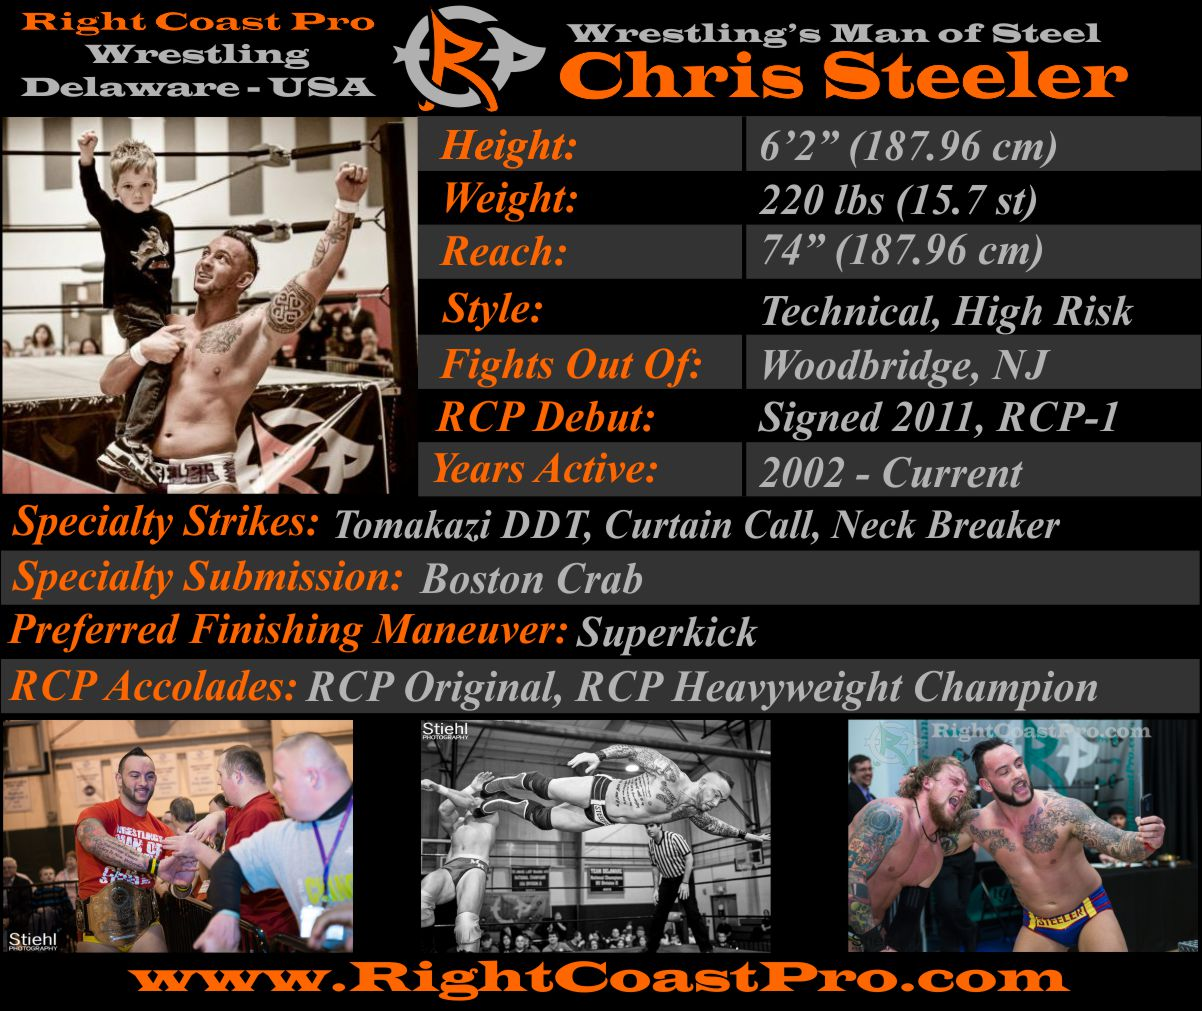 ChrisSteeler AthleteProfile RightCoastPro Wrestling Delaware